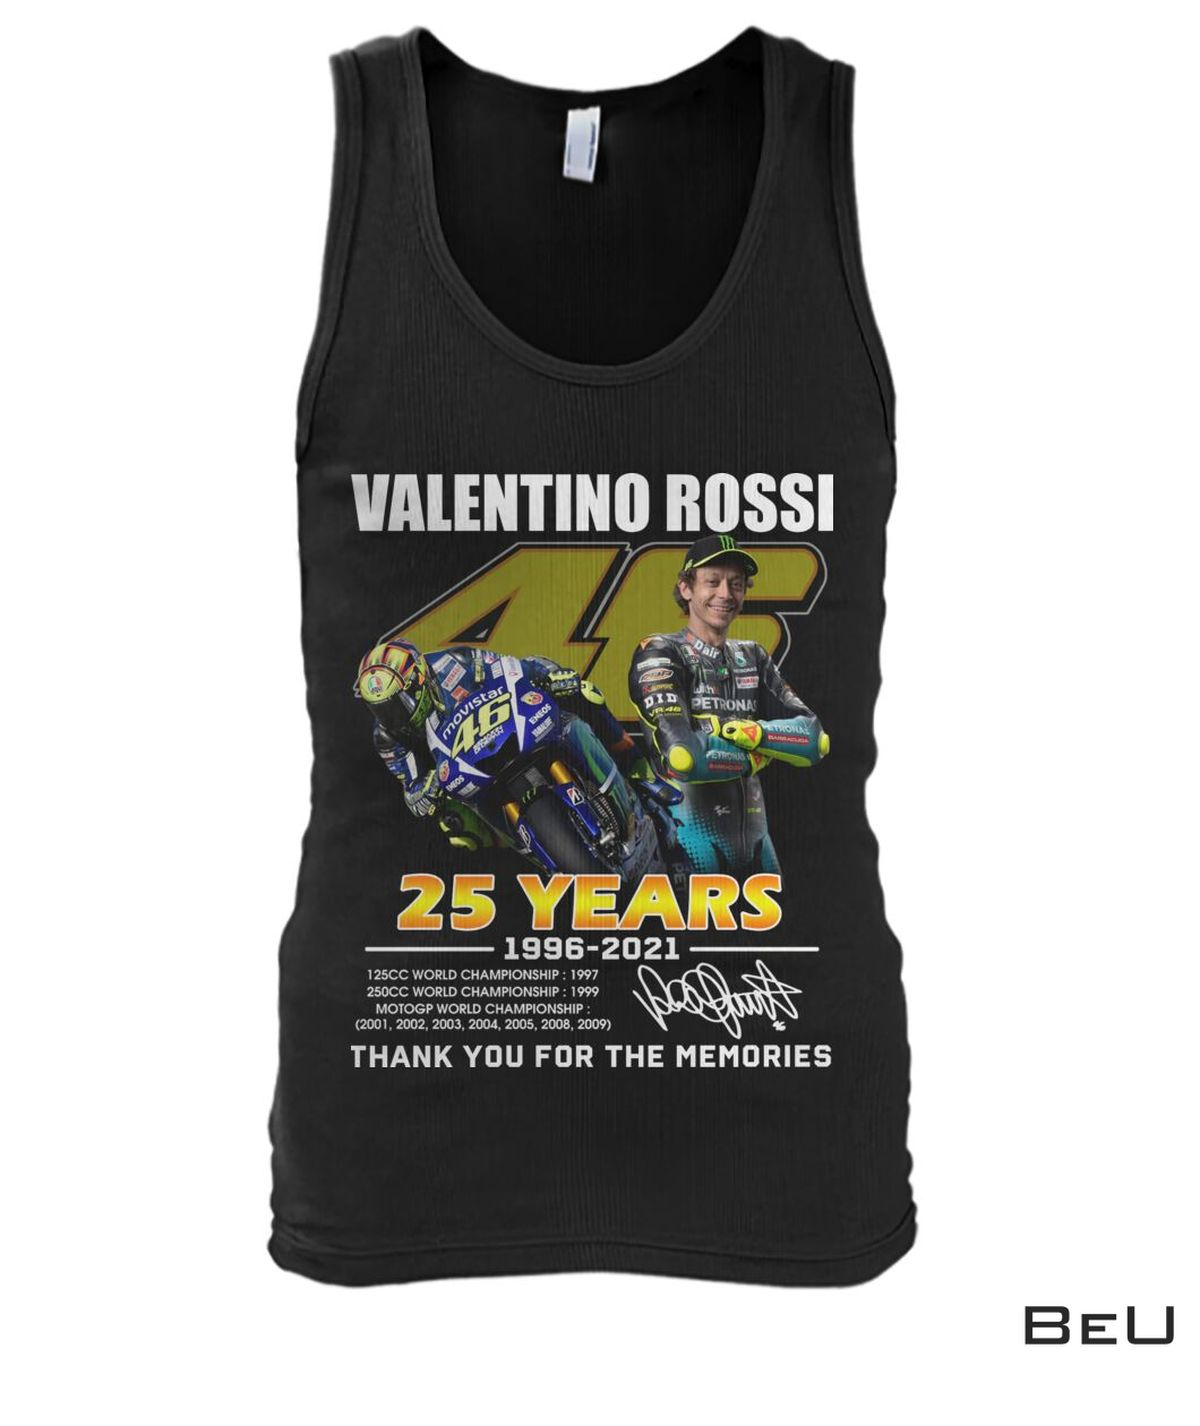 Valentino Rossi 25 Years Thank You For The Memories Shirt, hoodie ...